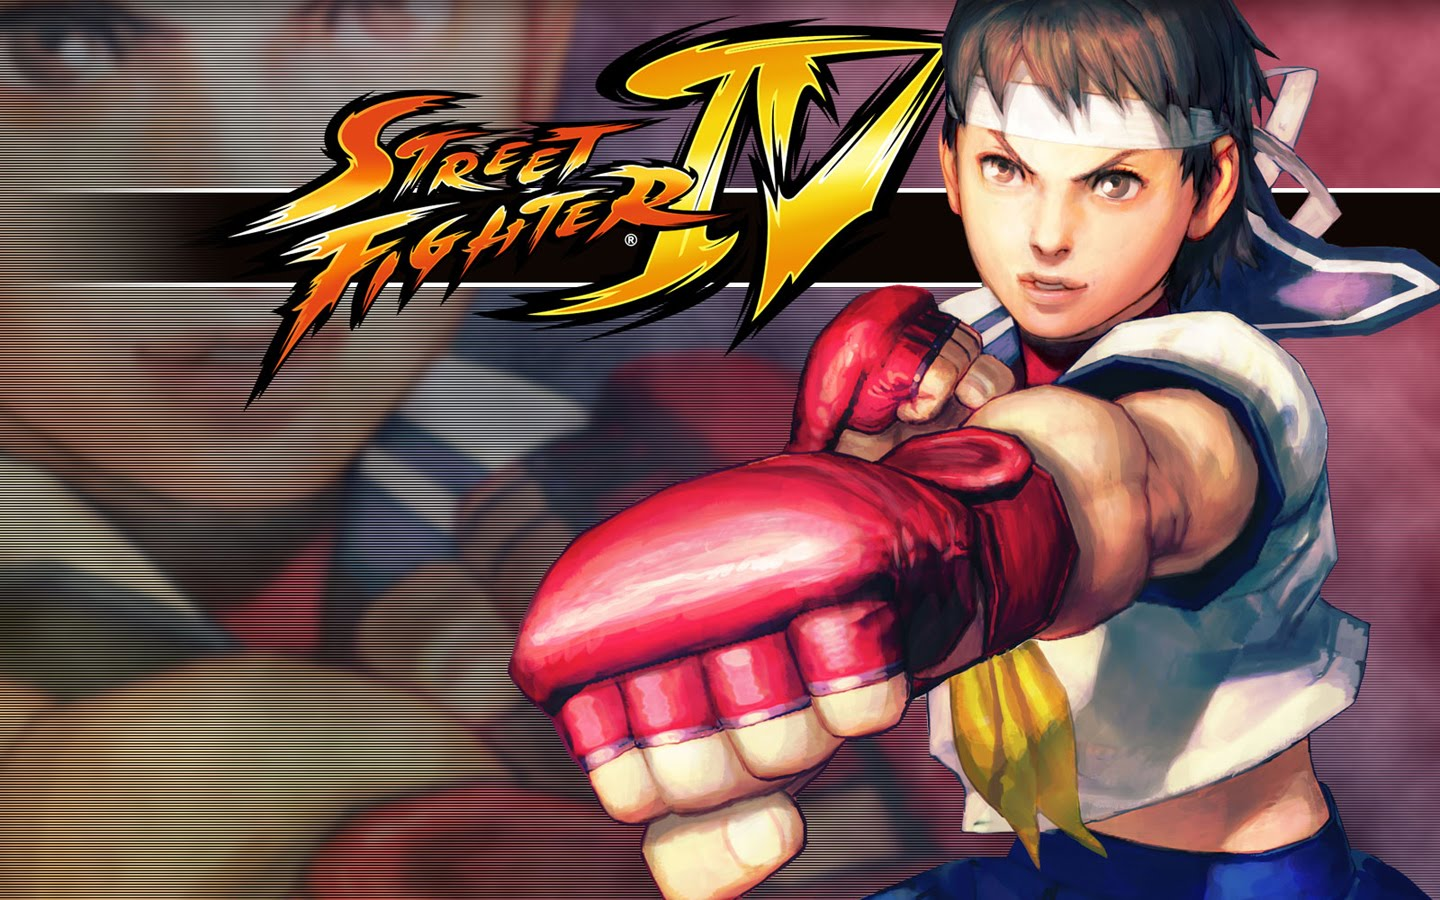 Street Fighter HD & Widescreen Wallpaper 0.462282509221632